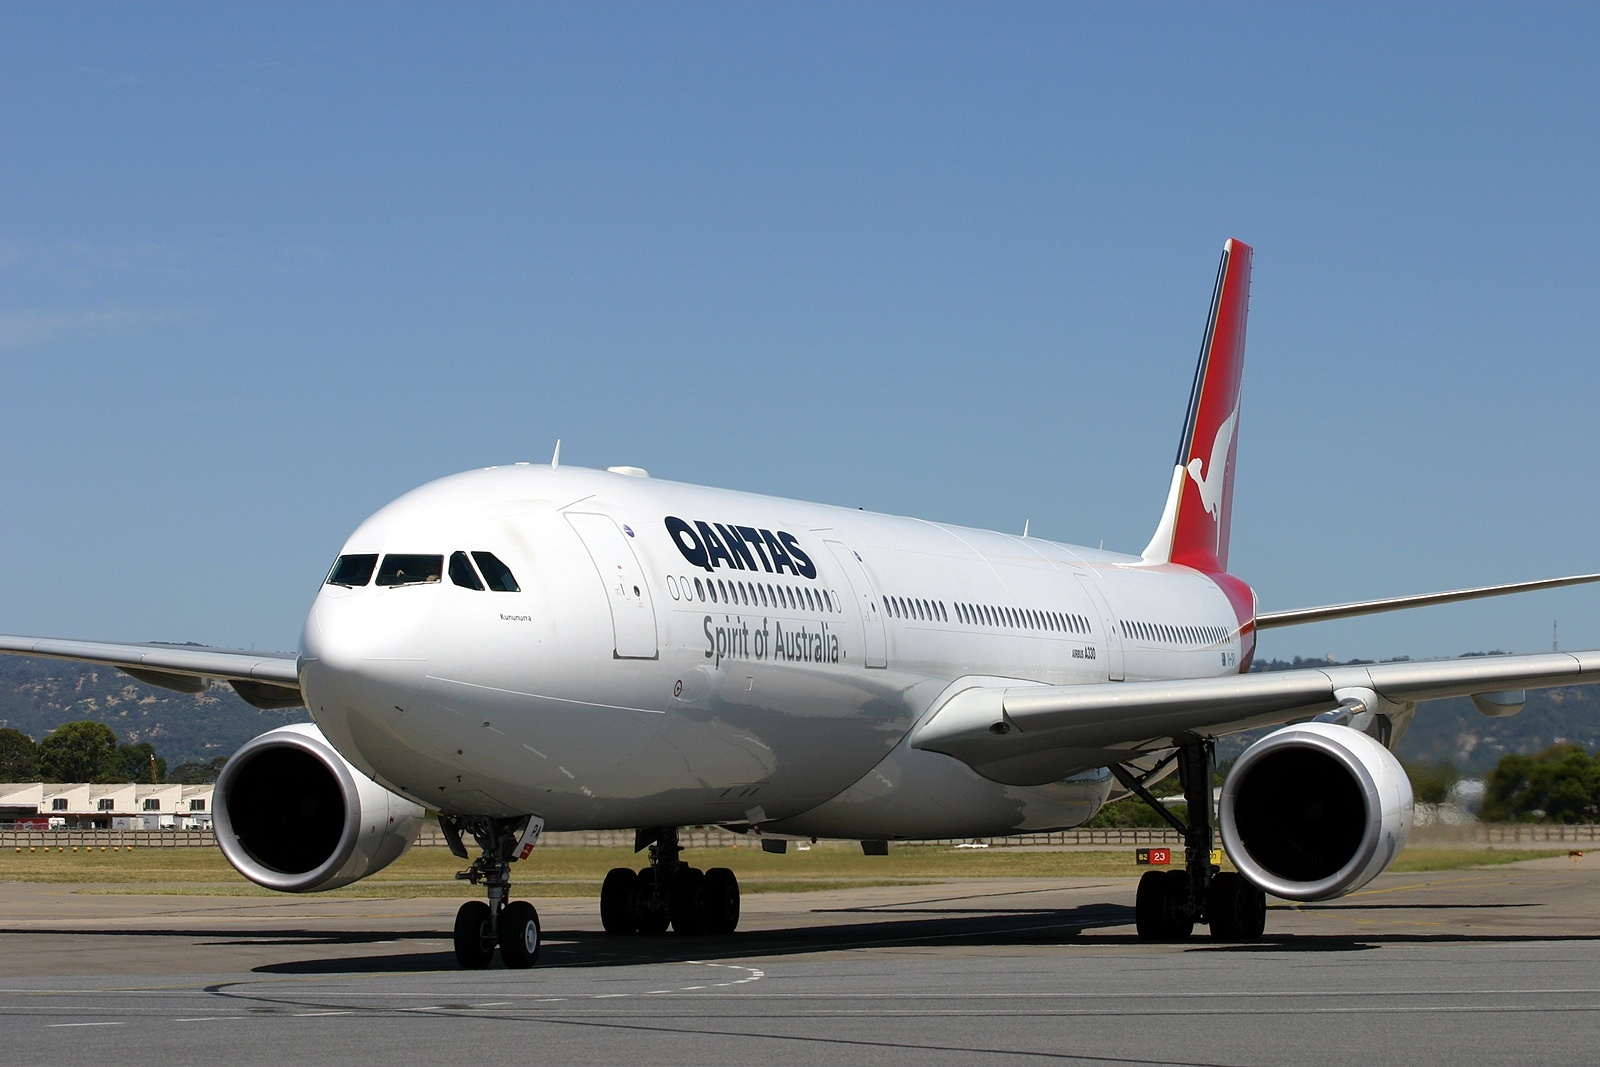 Qantas Flight 72 - Wikipedia